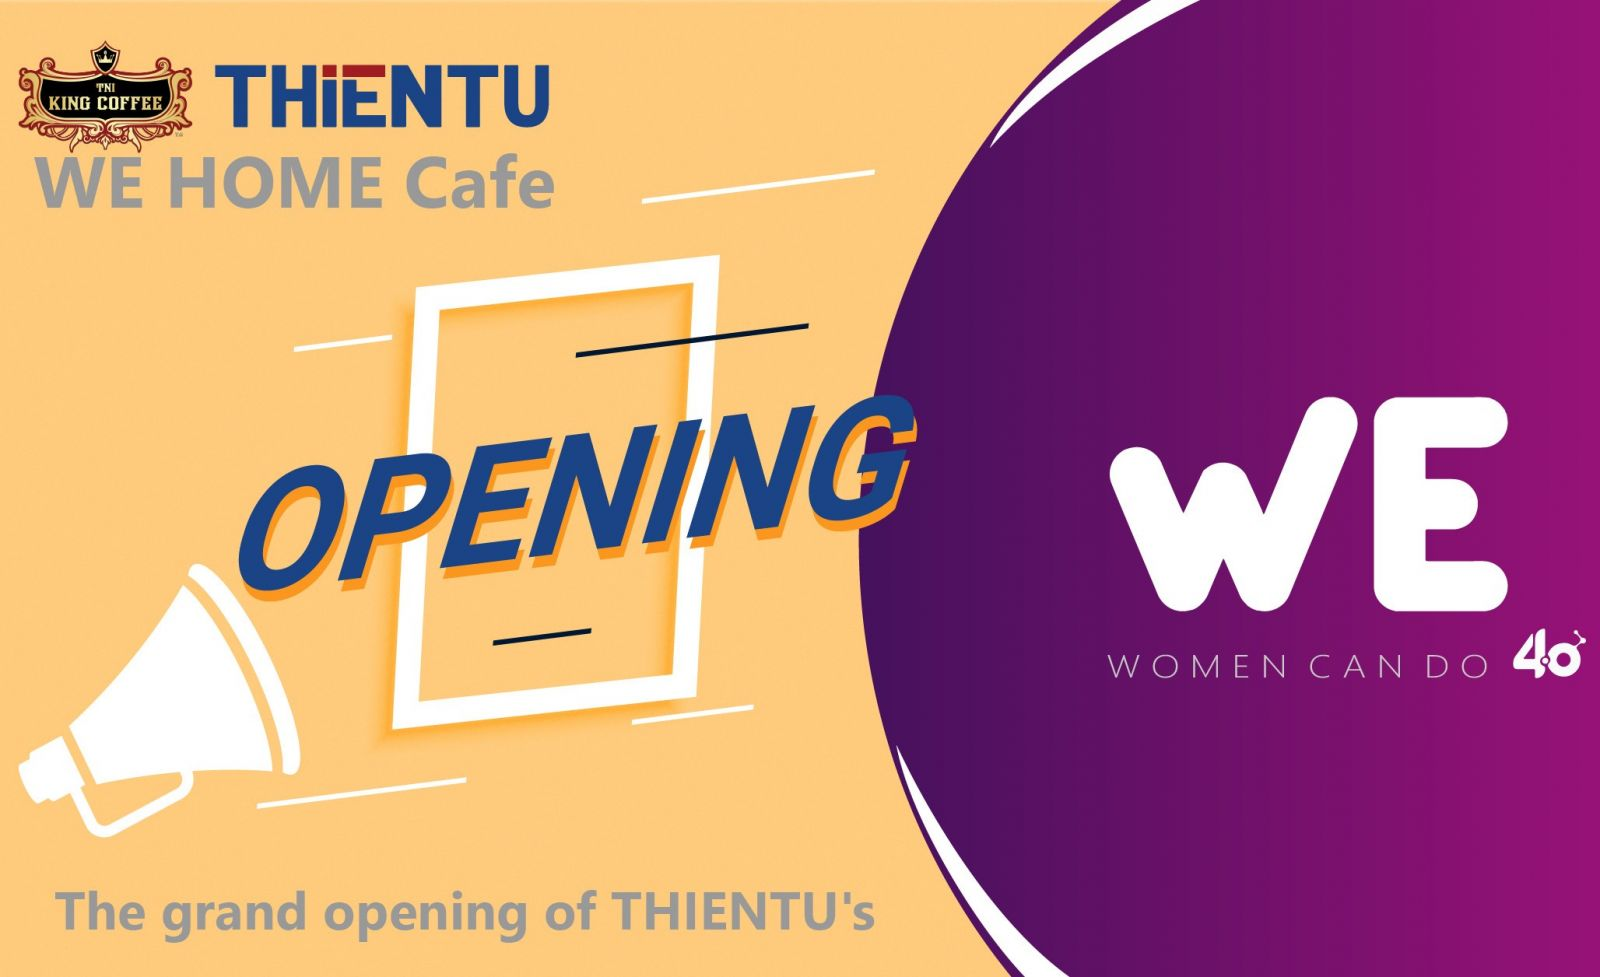 wehome cafe opening